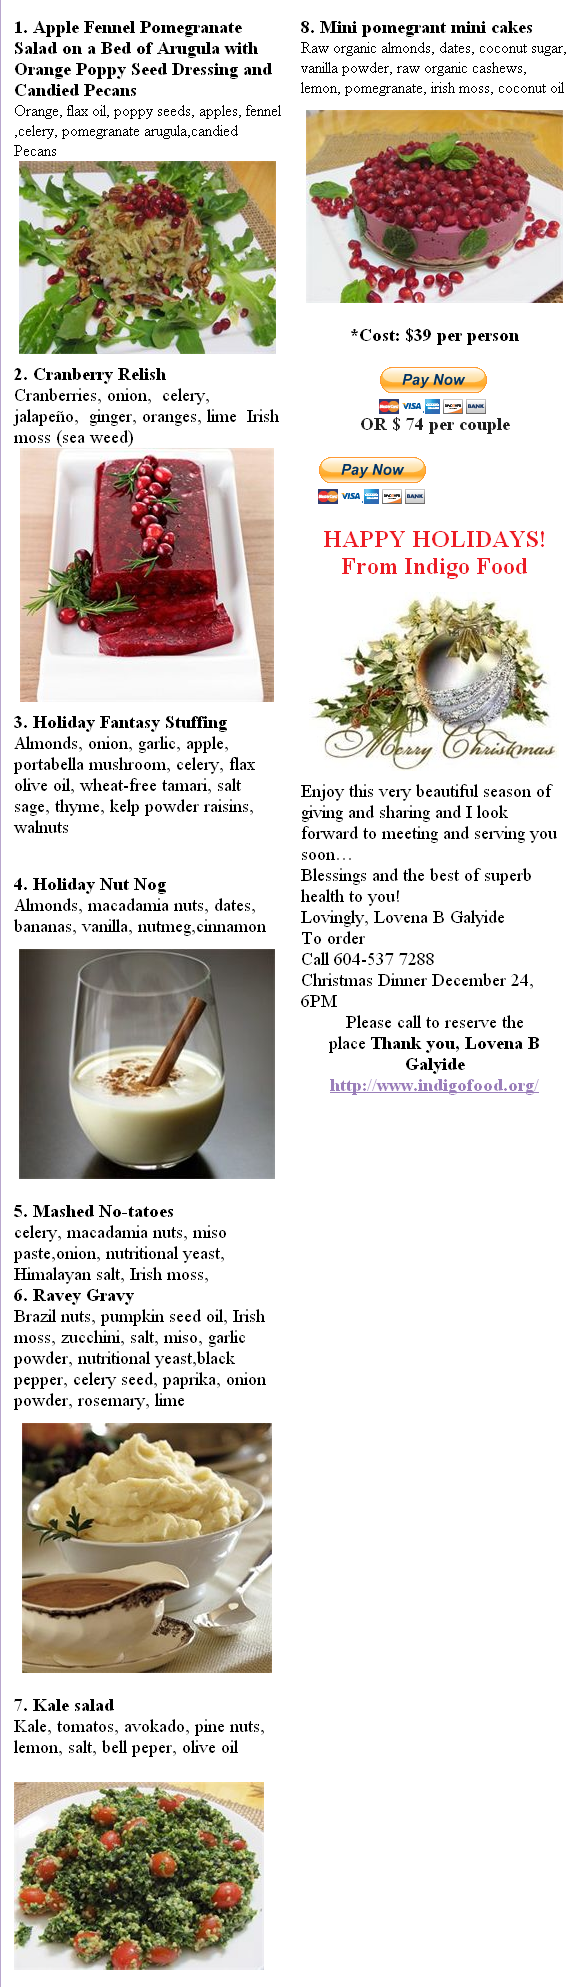 Indigo Christmas Menu 2011 items